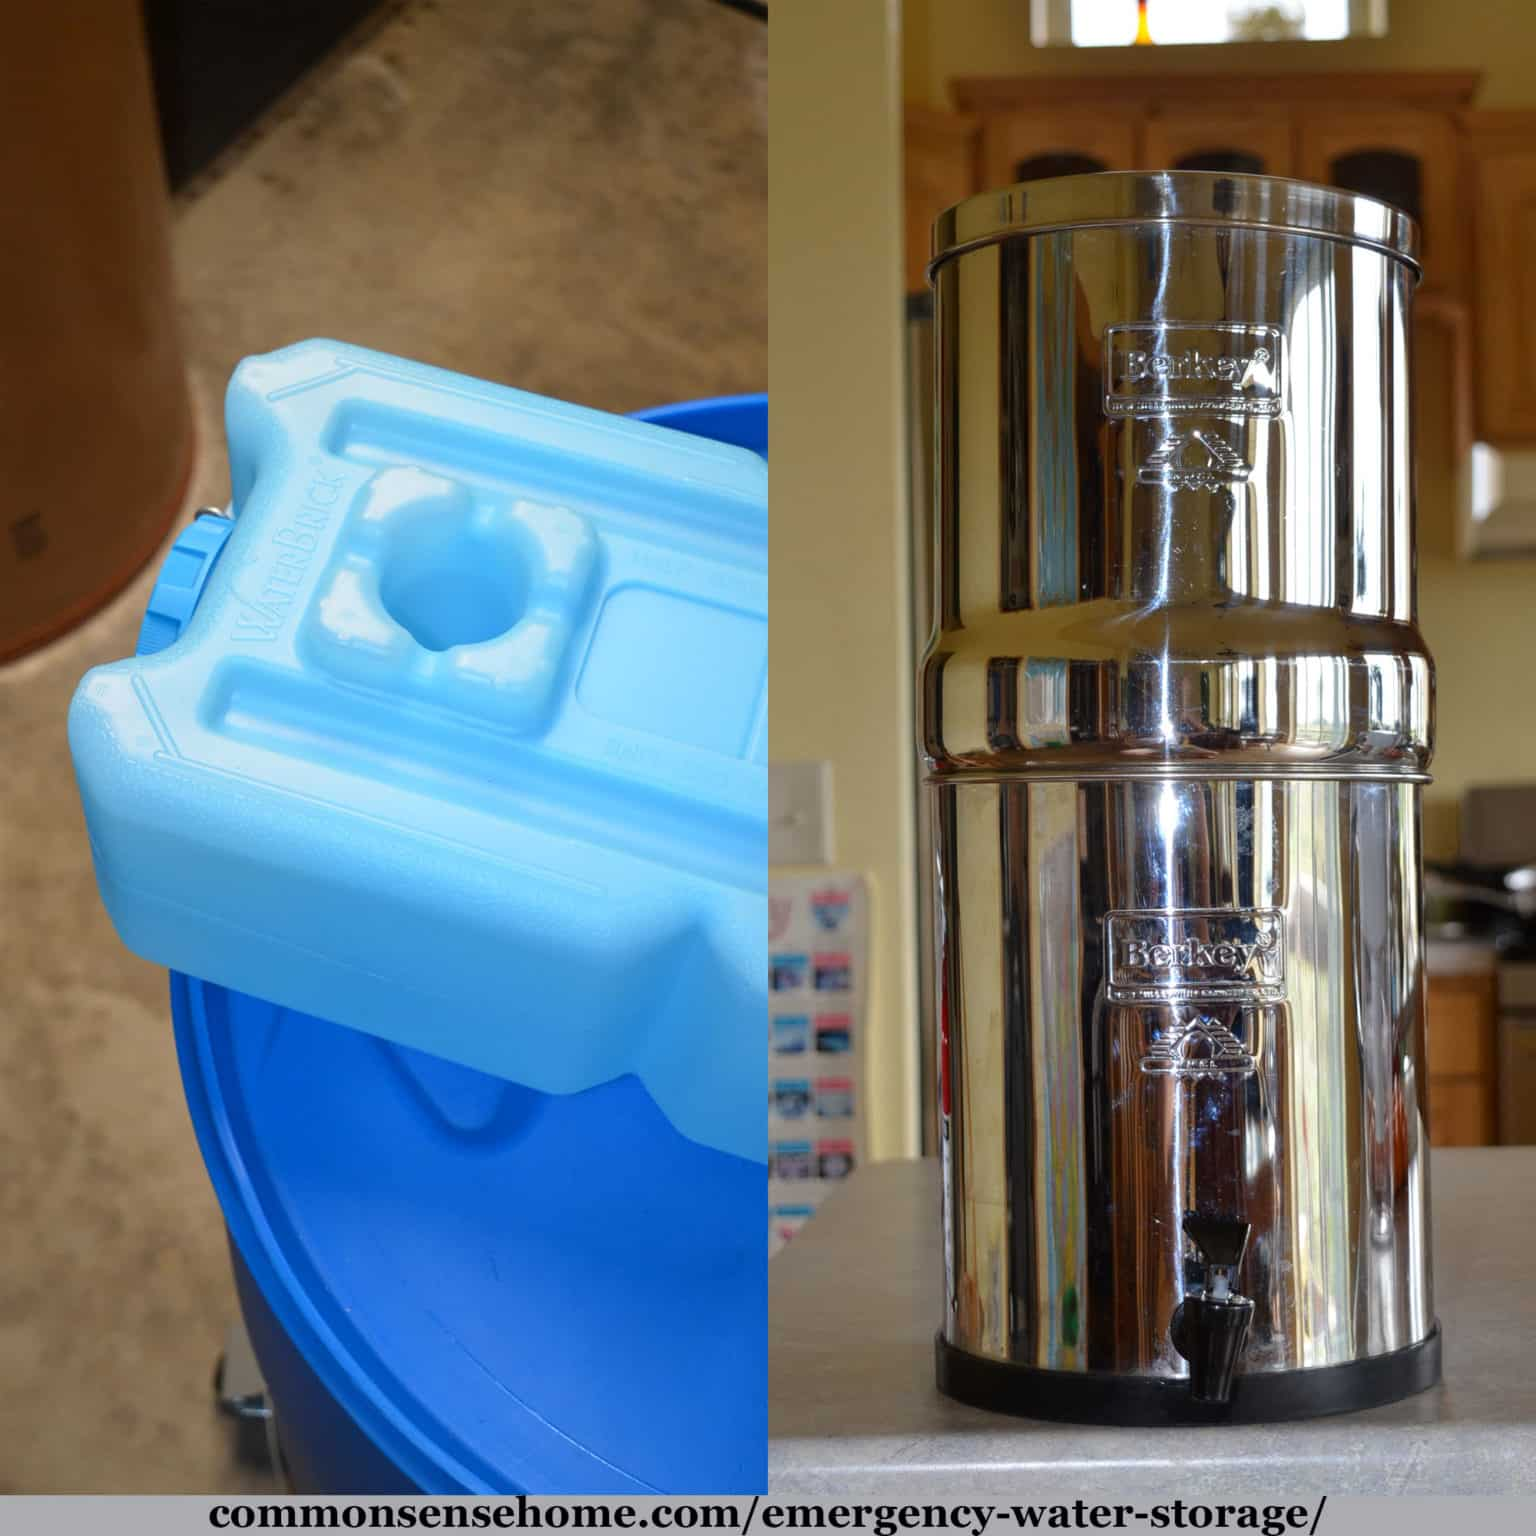 Emergency water storage and filtration